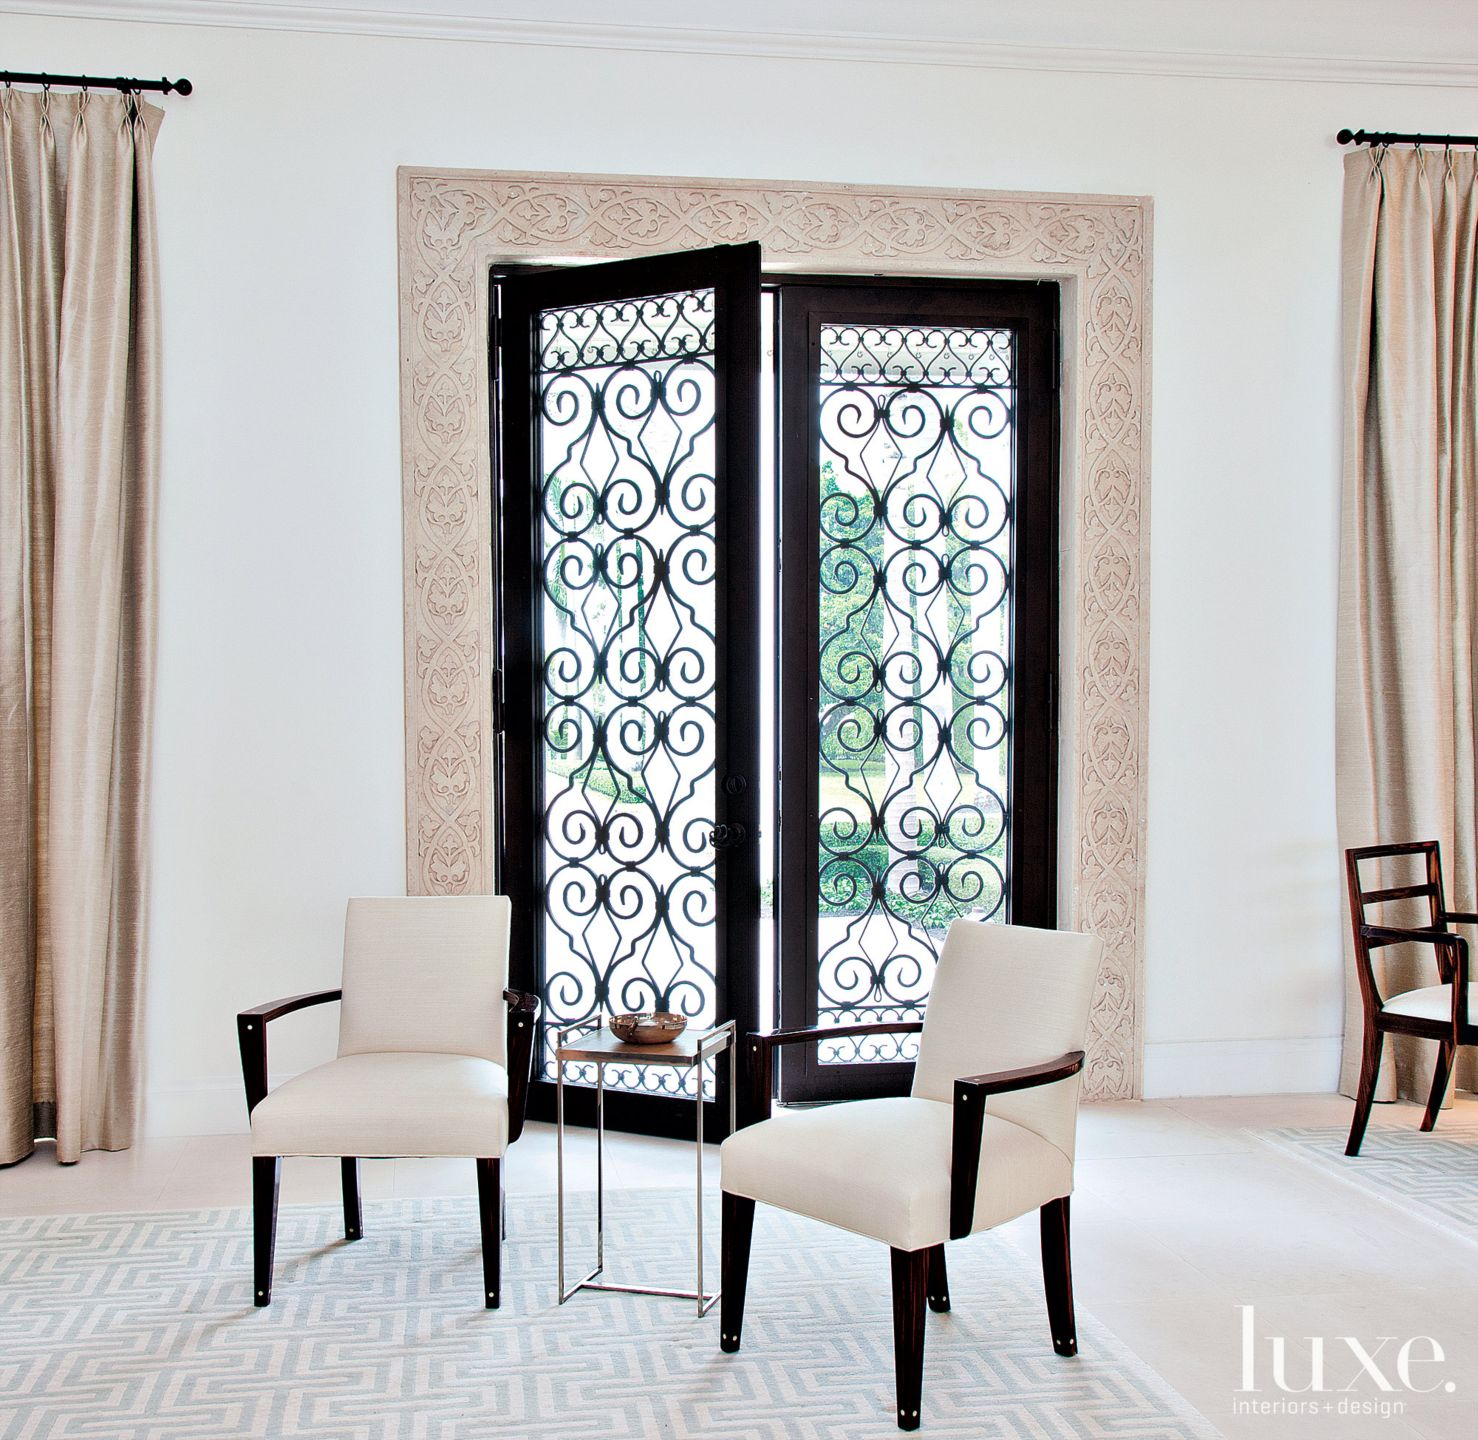 Contemporary White Sitting Area with Double Doors